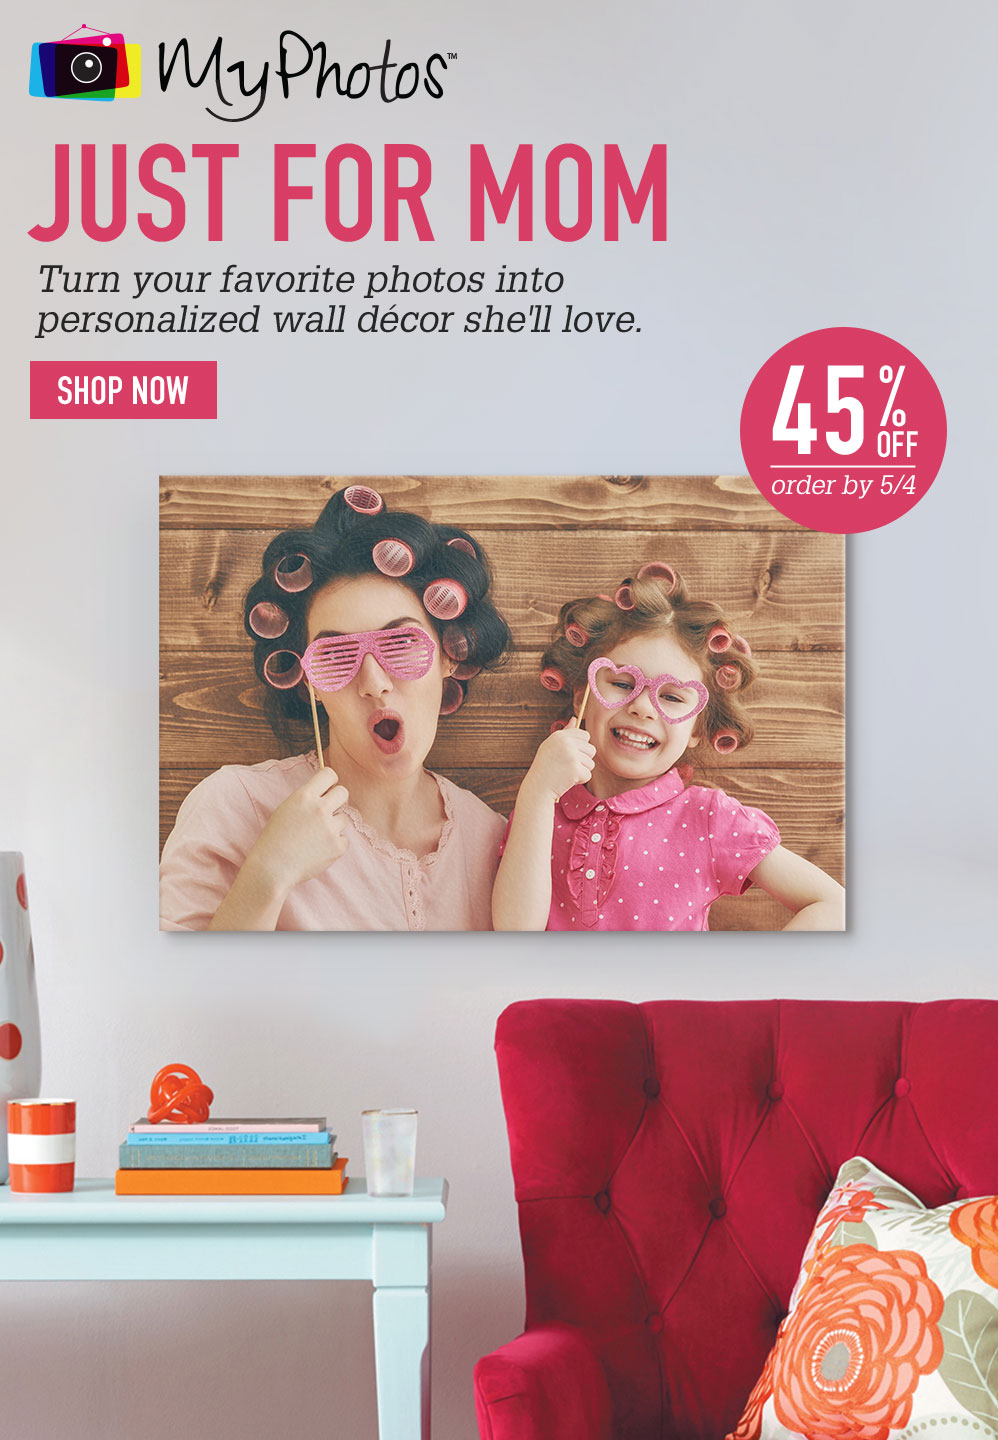 JUST FOR MOM. Turn your favorite photos into personalized wall décor she'll love. 45% OFF. Order by 5/4. SHOP NOW